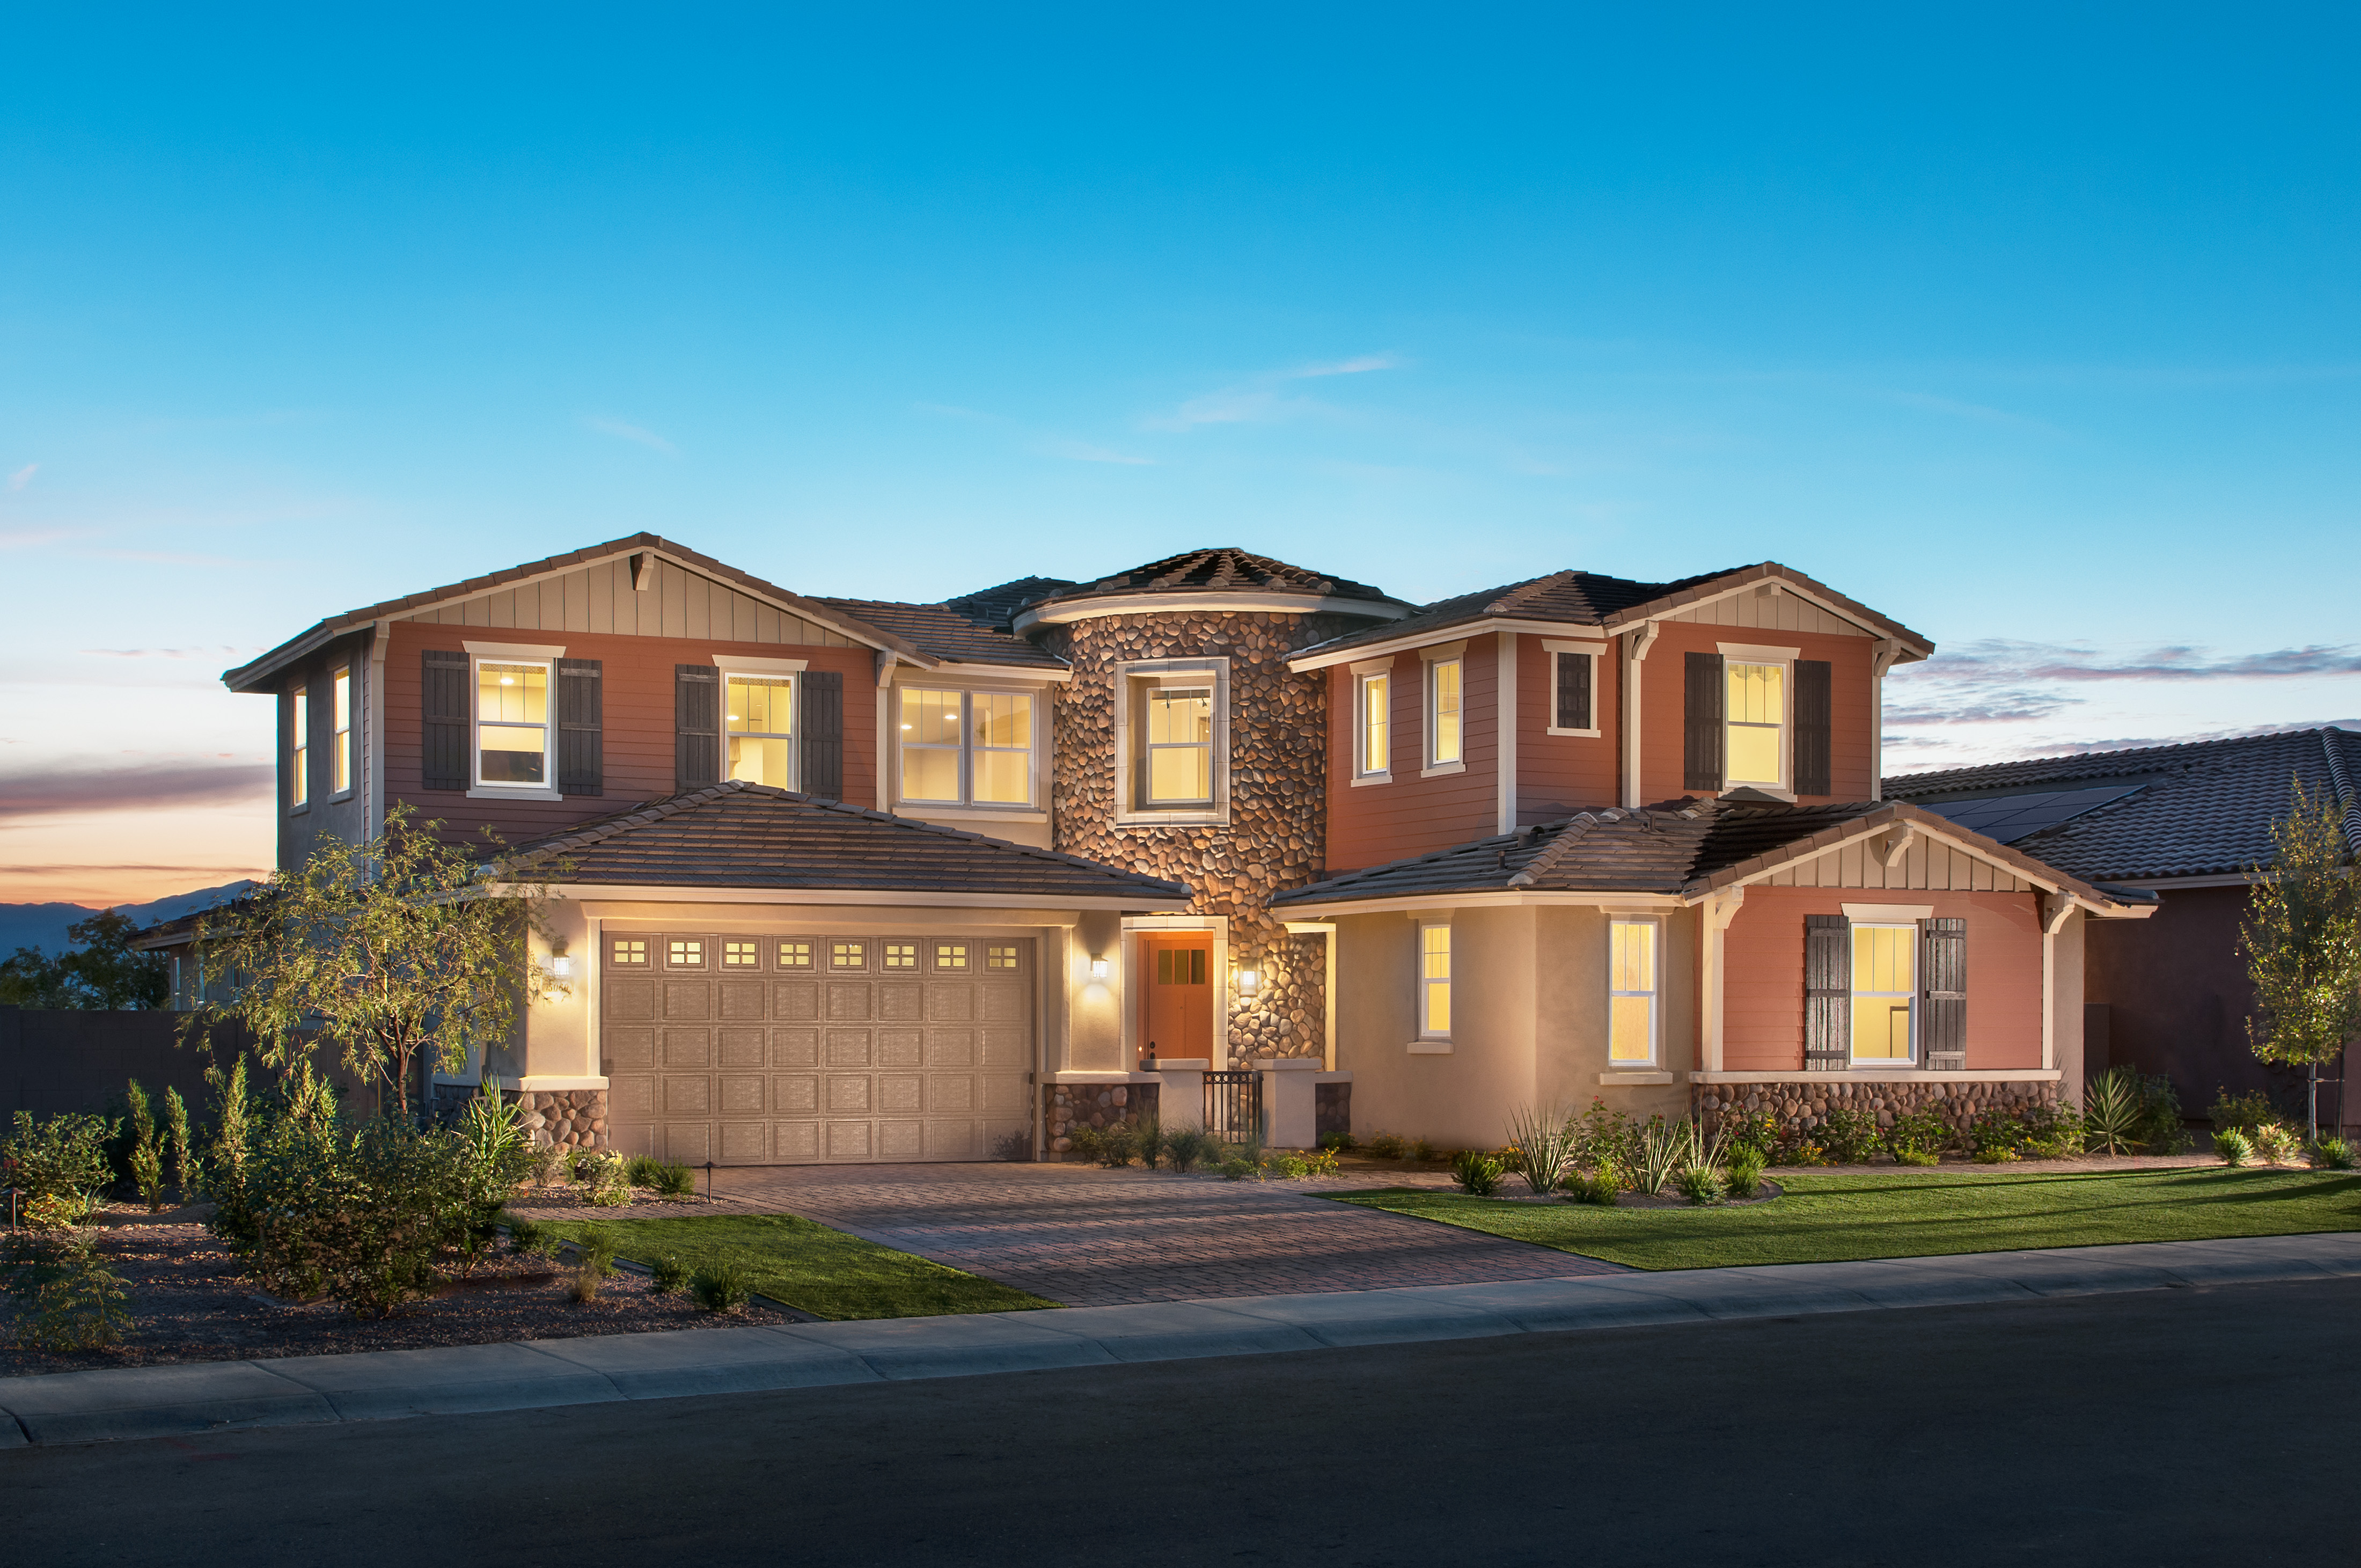 Palm valley north by mattamy homes newhomecentral for North valley homes